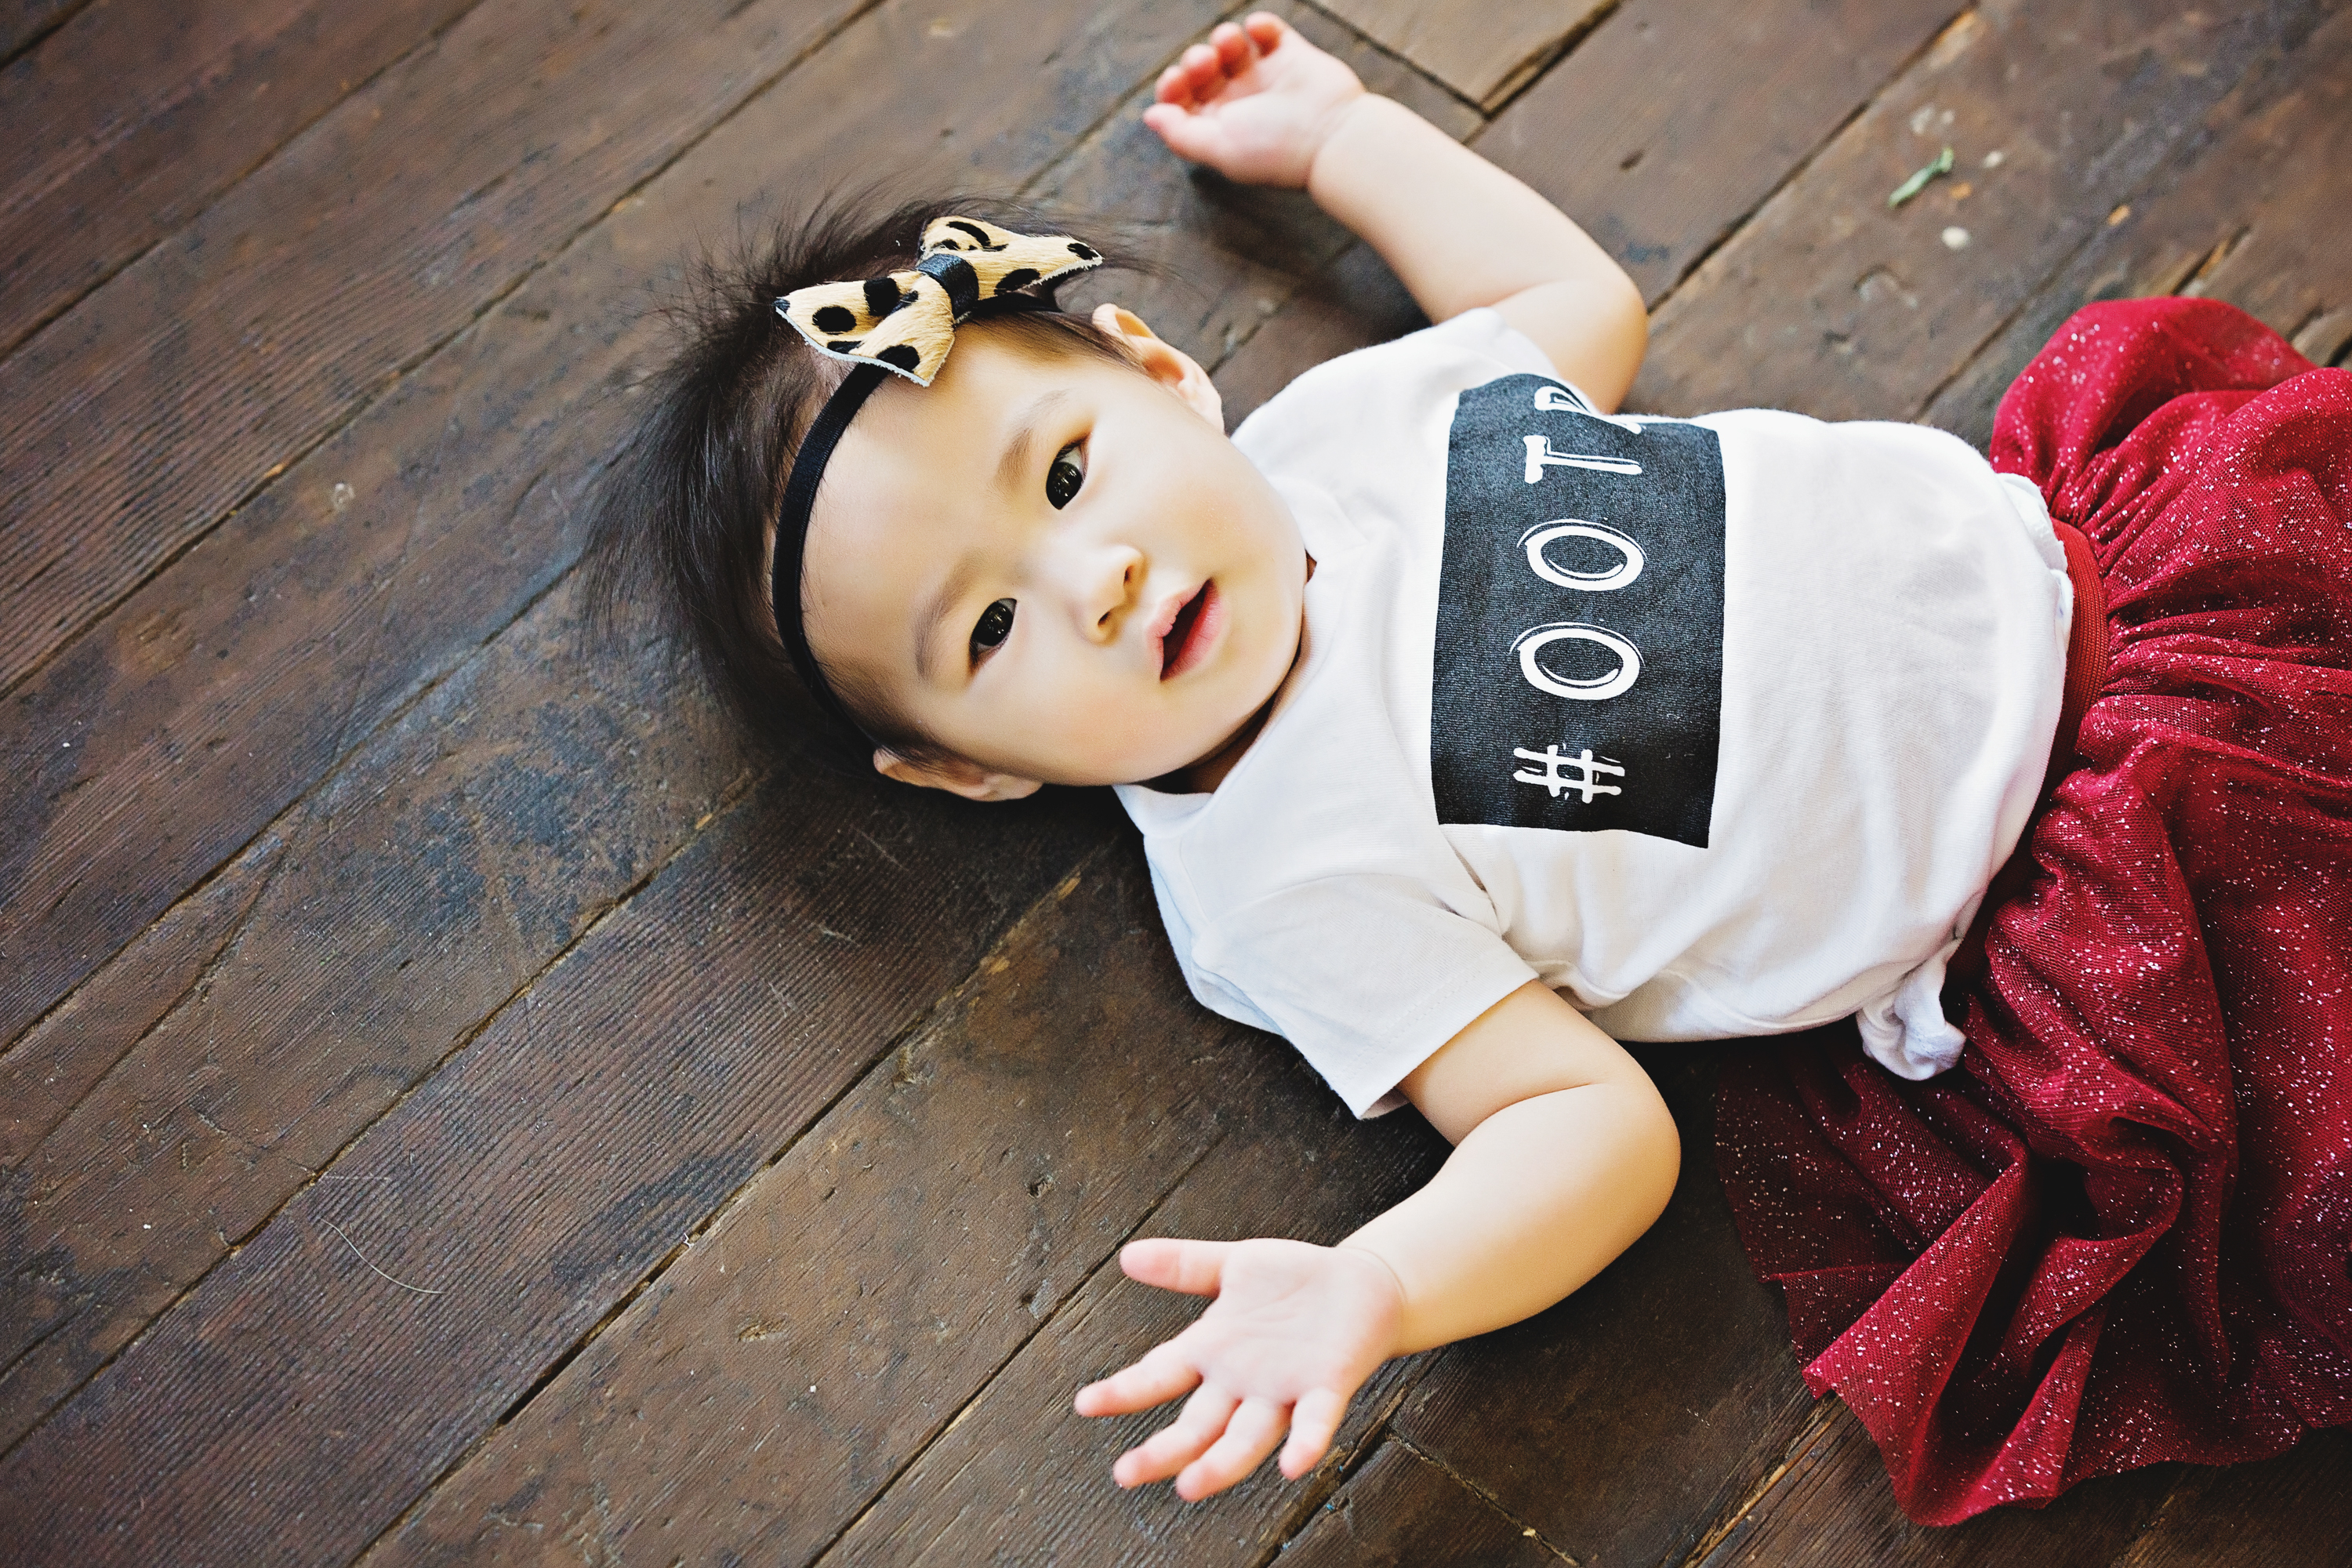 Baby girl wearing #ootd shirt from Cents of Style